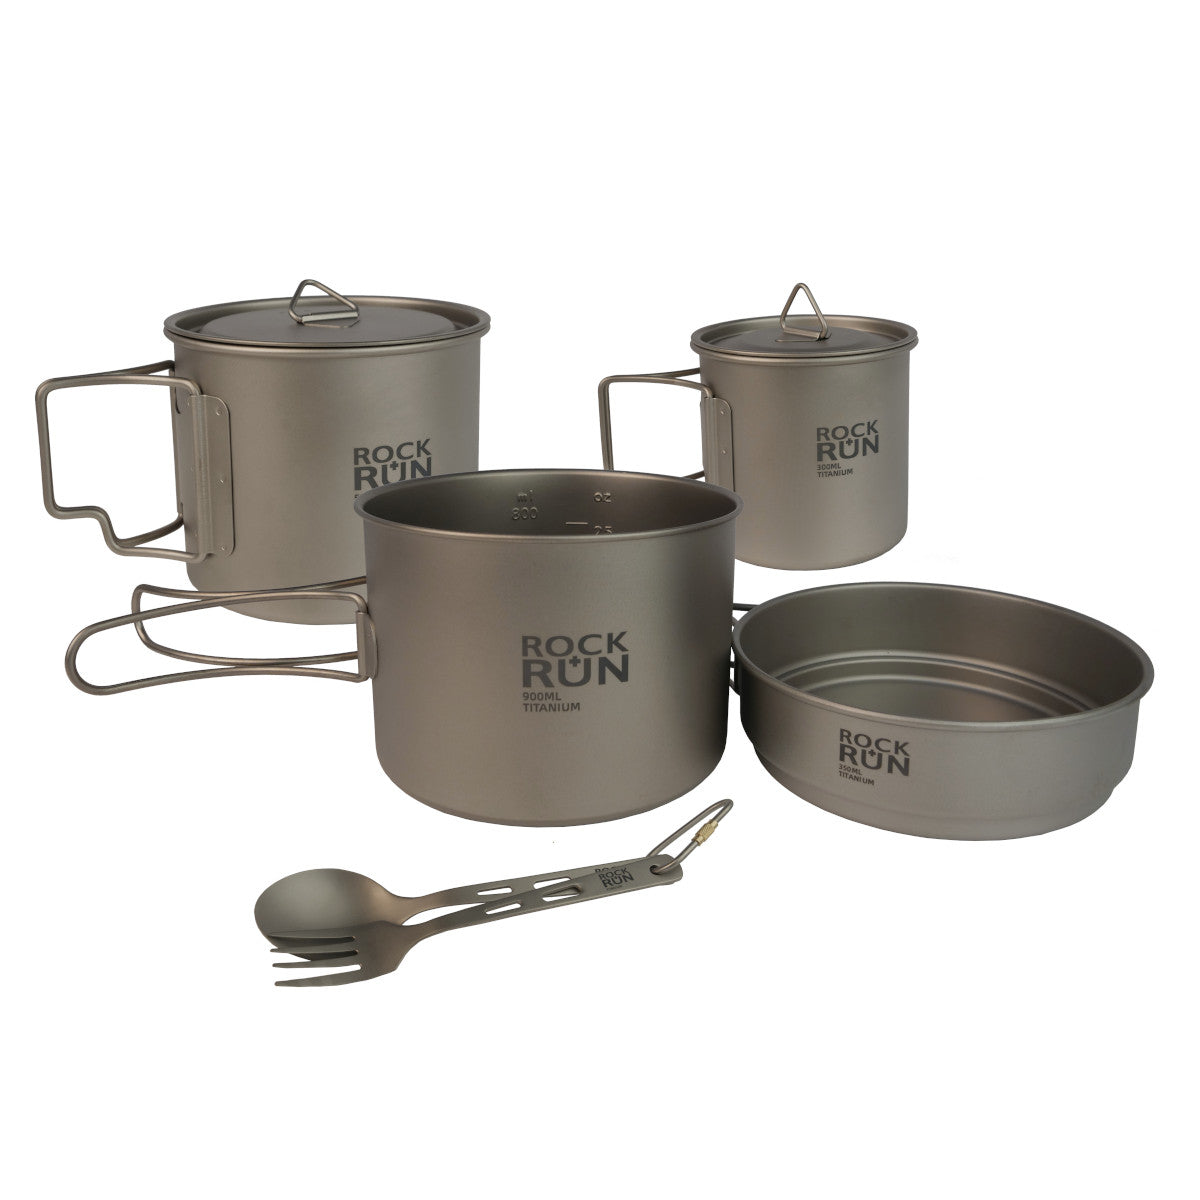 Rock + Run Titanium Cookware Set